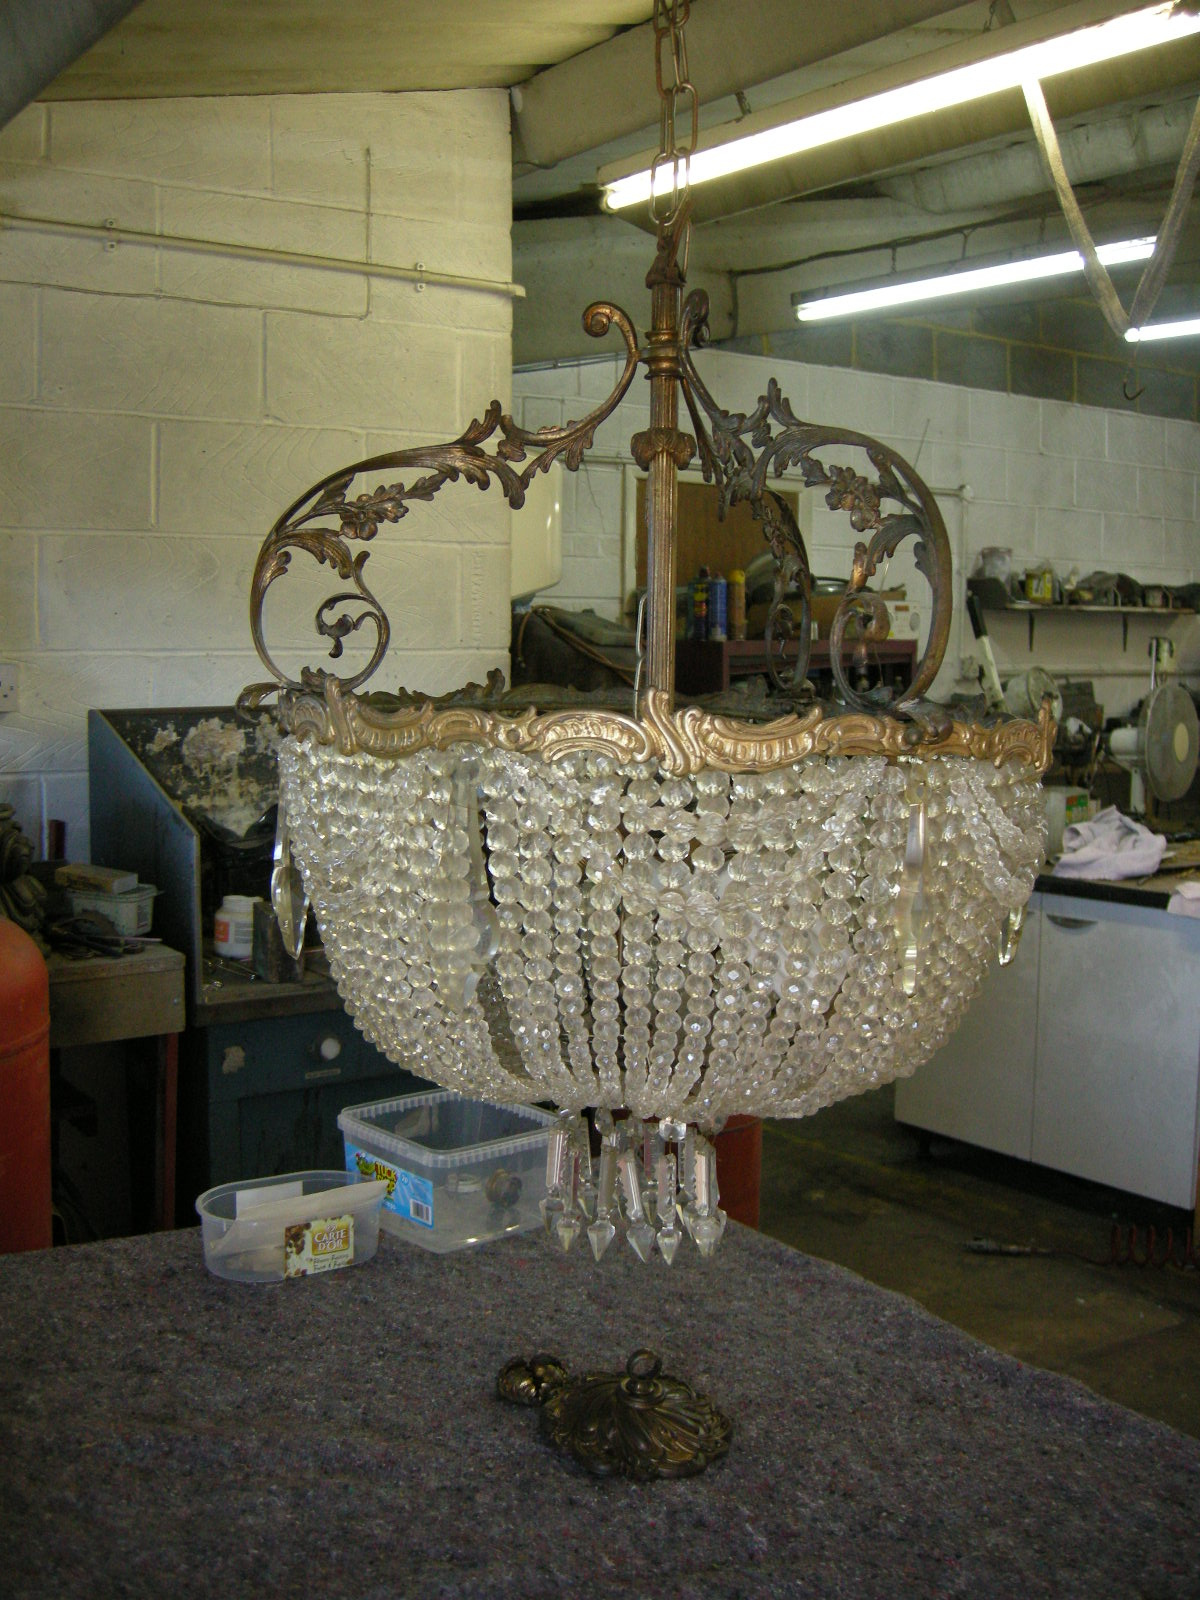 brass and glass chandelier before restoration